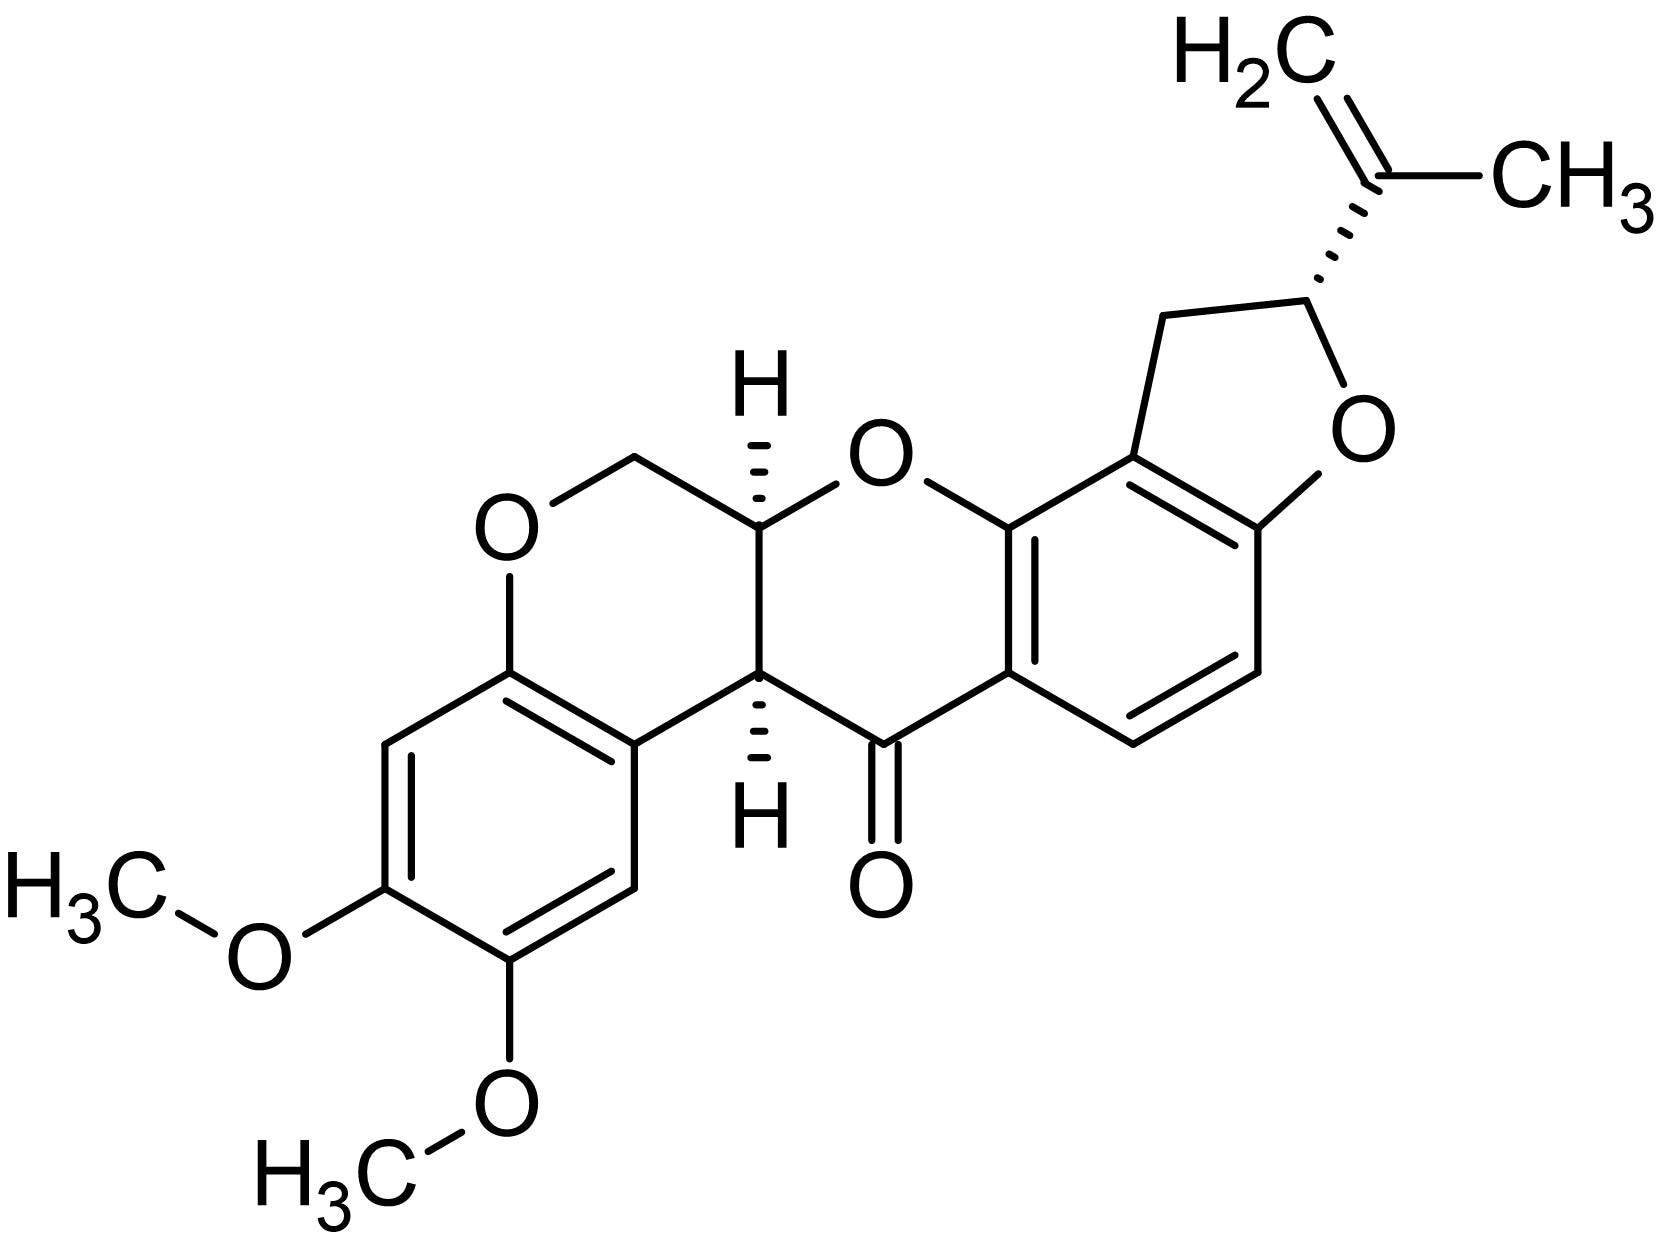 Chemical Structure - Rotenone, mitochondrial electron transport chain inhibitor (ab143145)